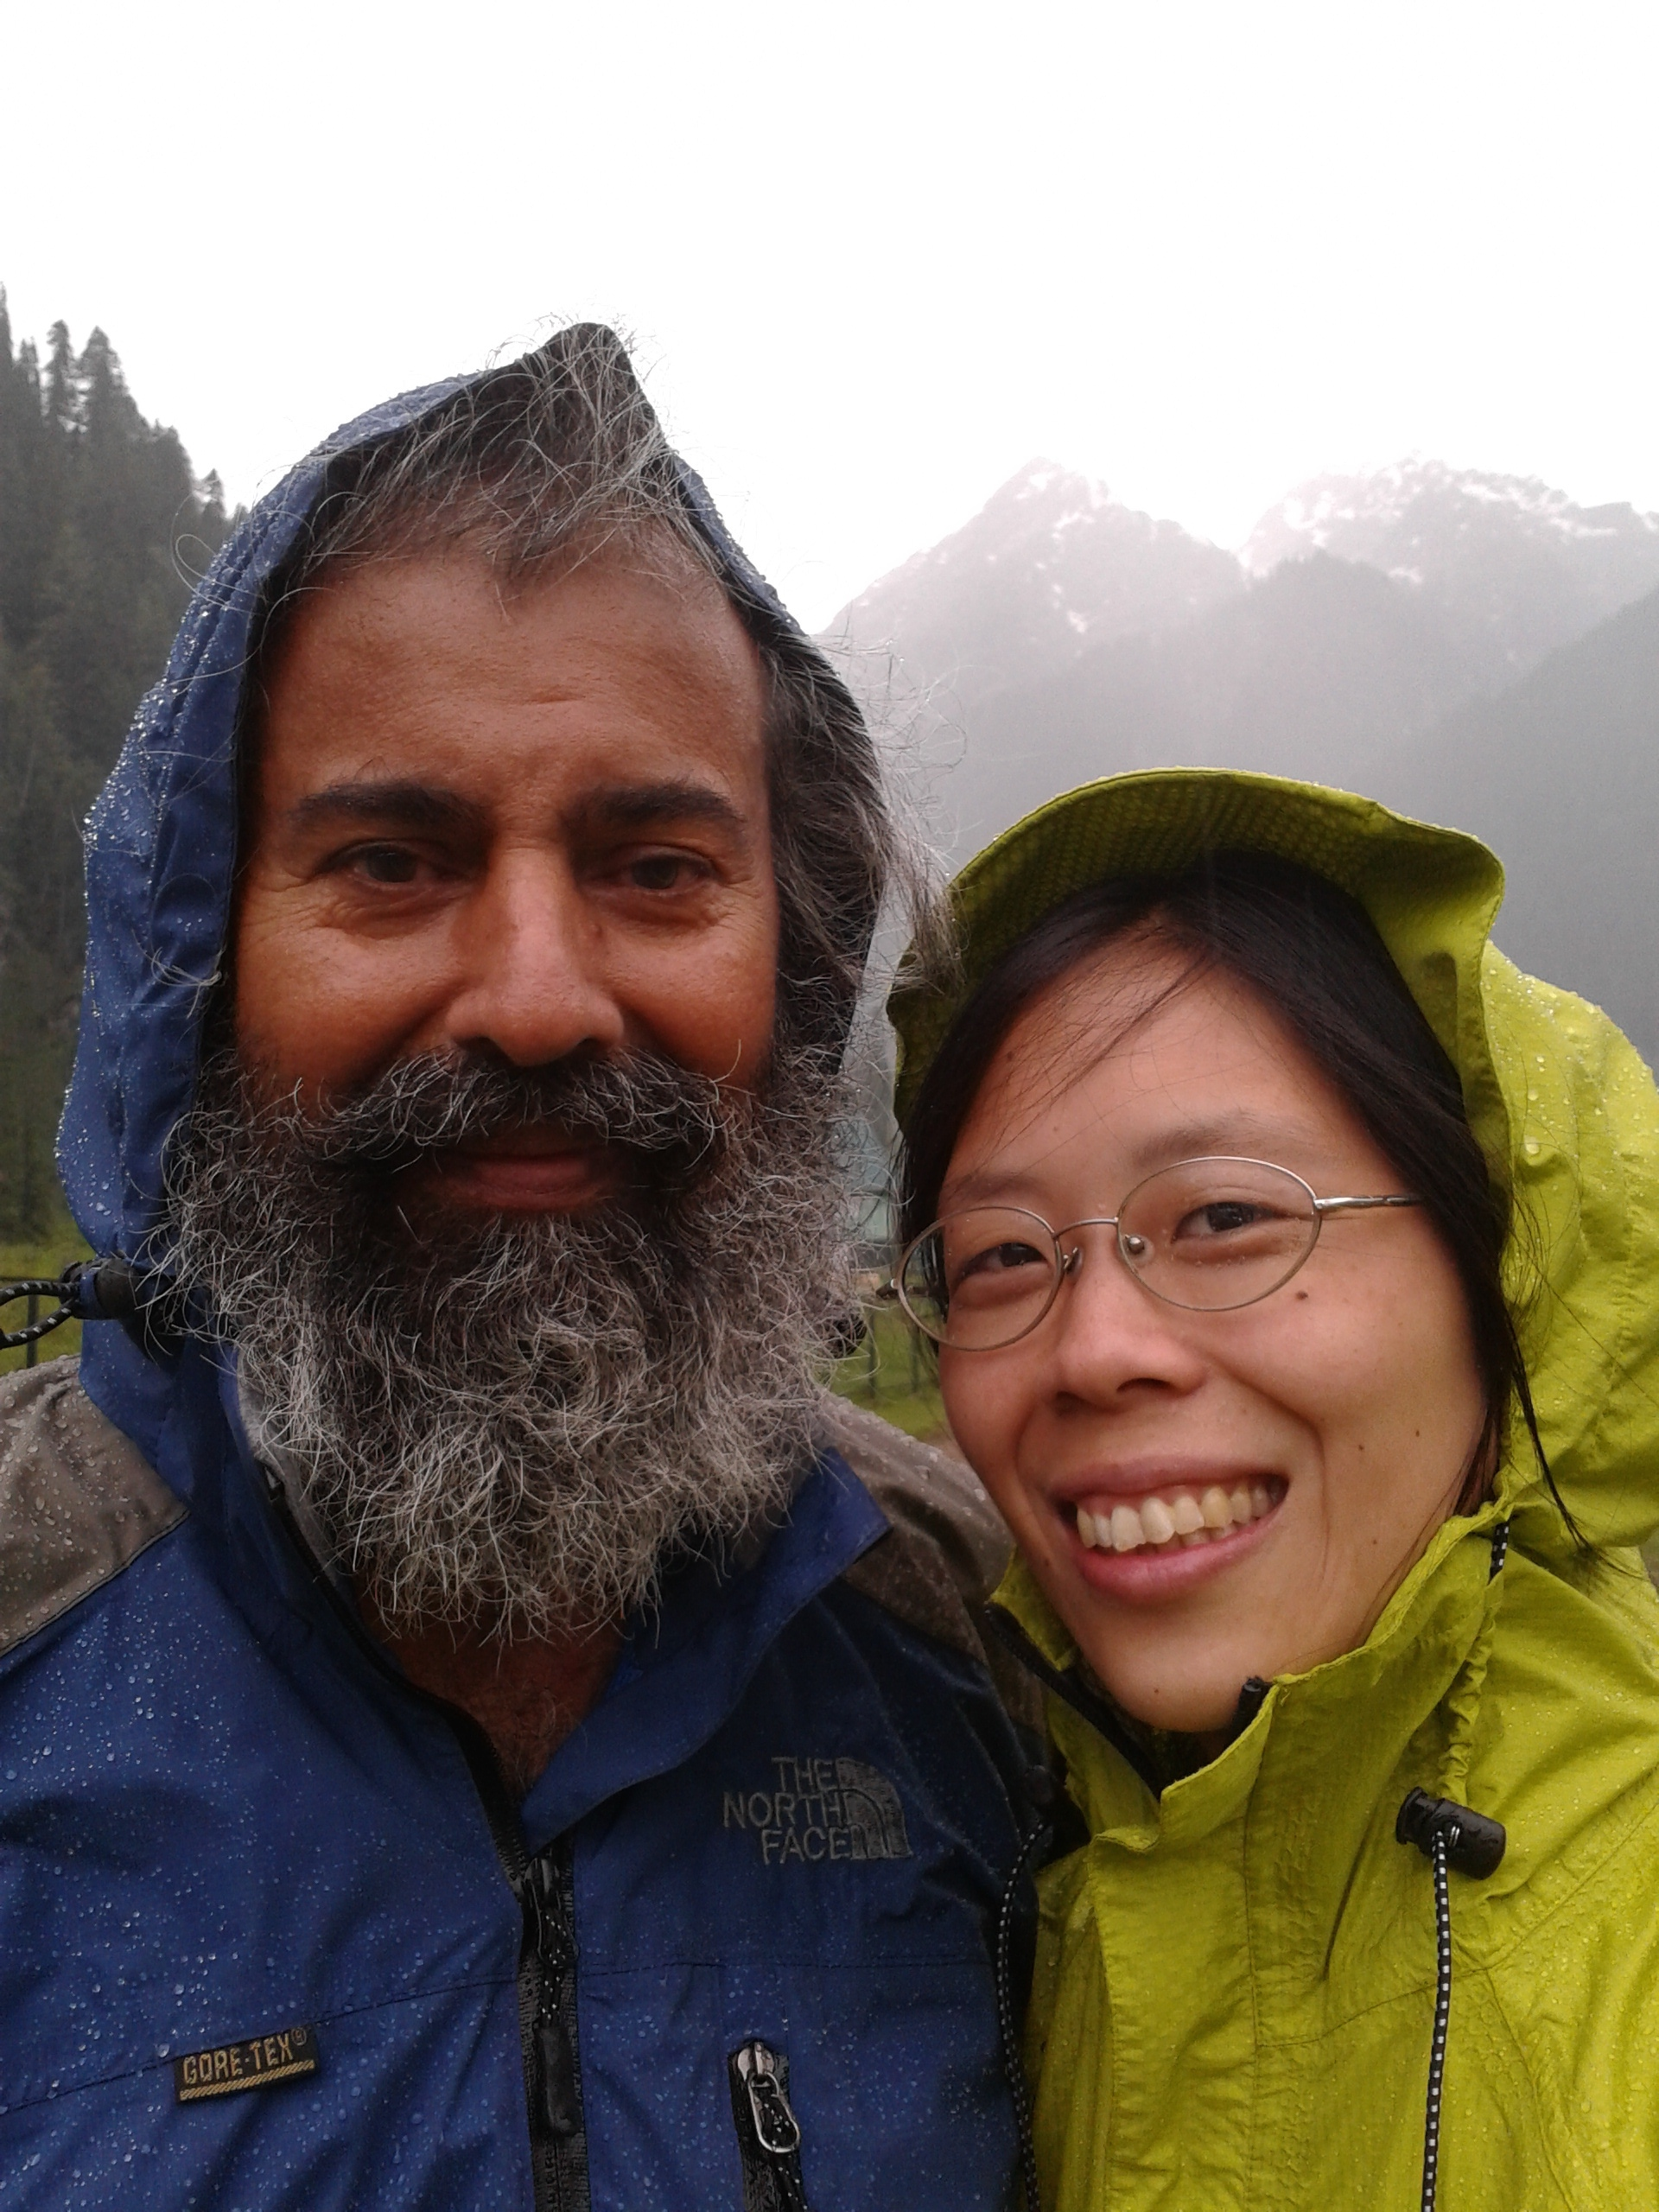 Adiatmana & Aastha in monsoon season